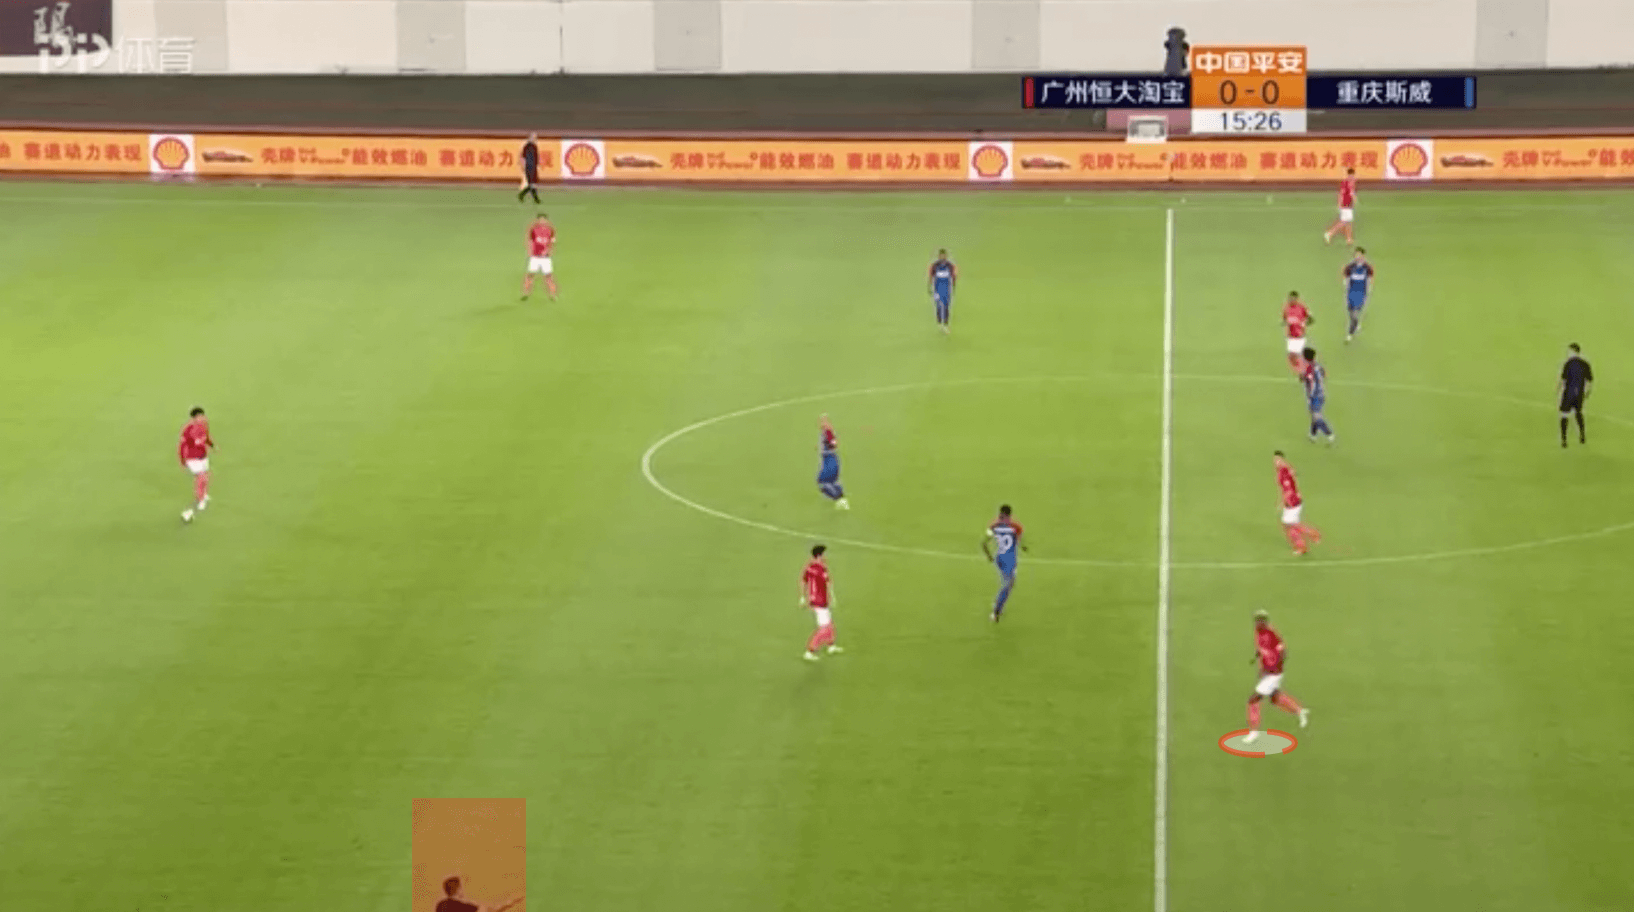 Chinese Super League 2019 : Guangzhou Evergrande Tabao vs Chongqing Lifan - tactical analysis tactics